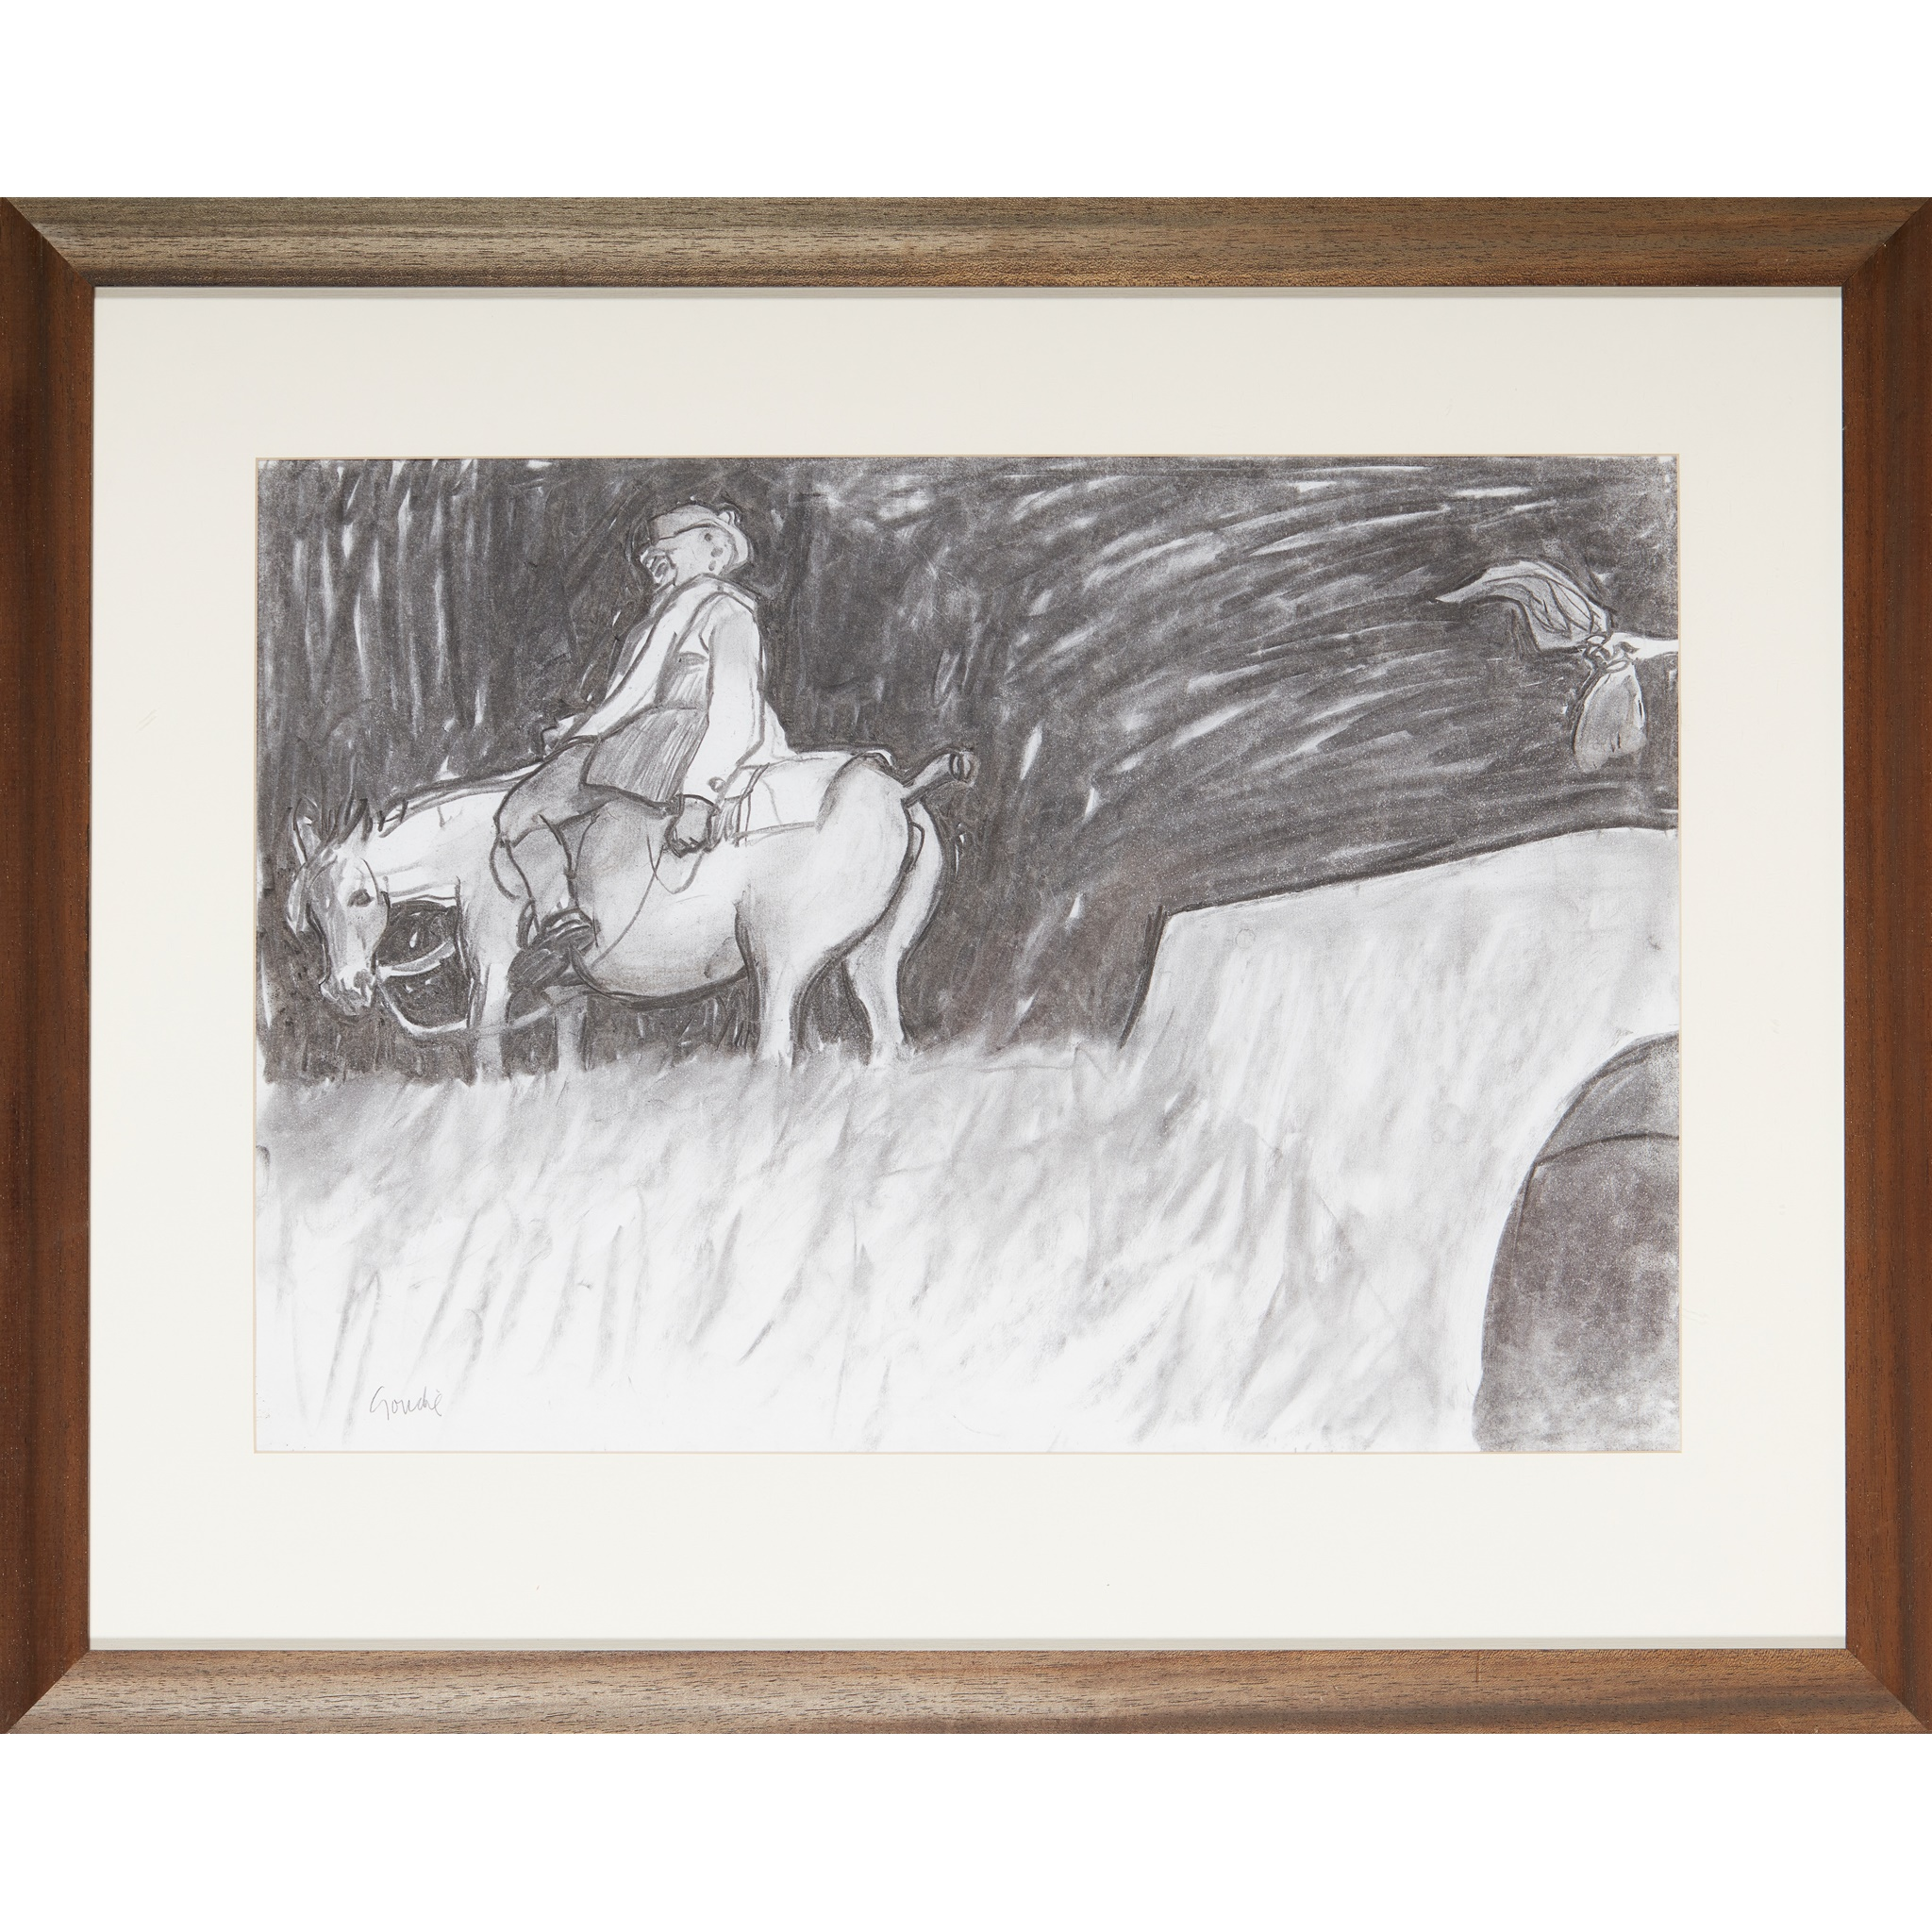 """§ ALEXANDER GOUDIE (SCOTTISH 1933-2004) """"BUT LEFT BEHIND HER AIN GRAY TAIL"""", SKETCH FOR TAM - Image 2 of 3"""